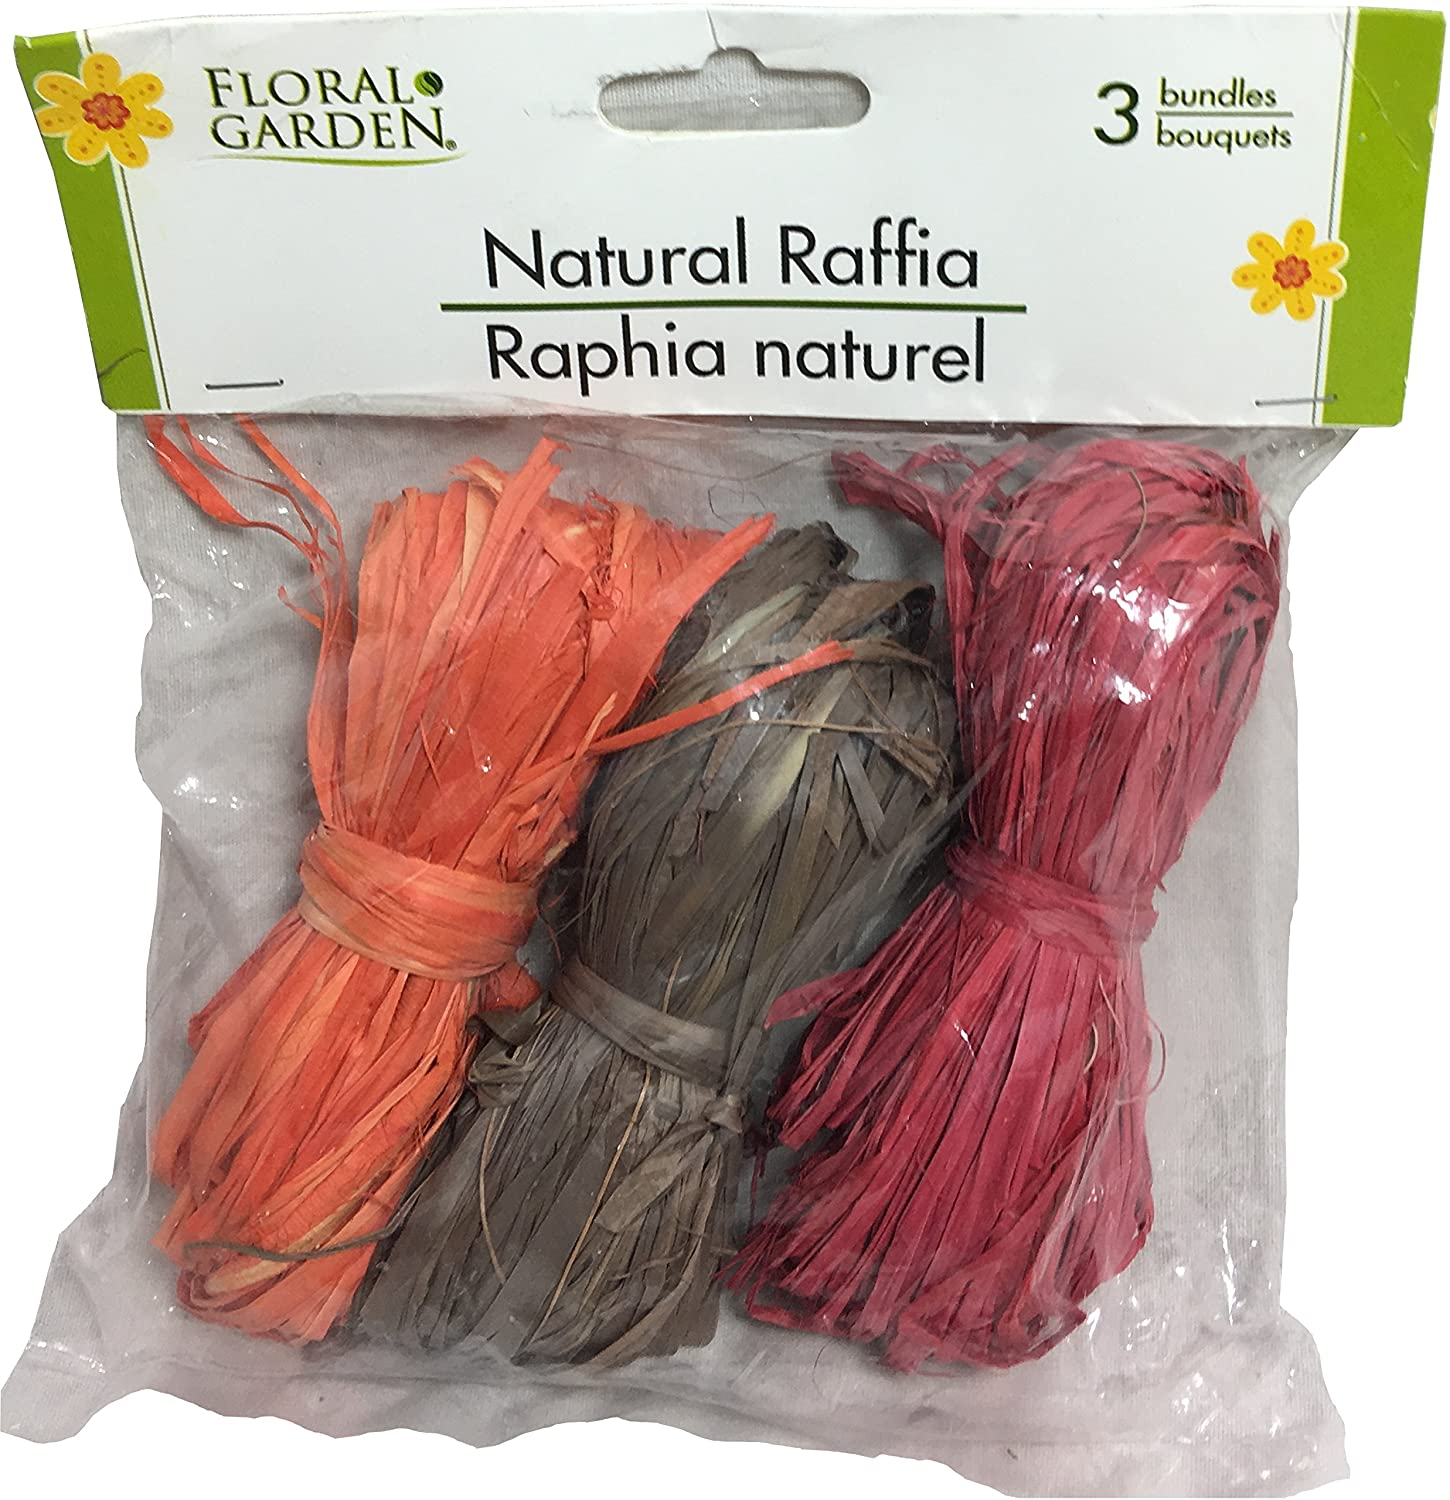 Floral Garden Natural Raffia, 2 Bags (Autumn Colors)